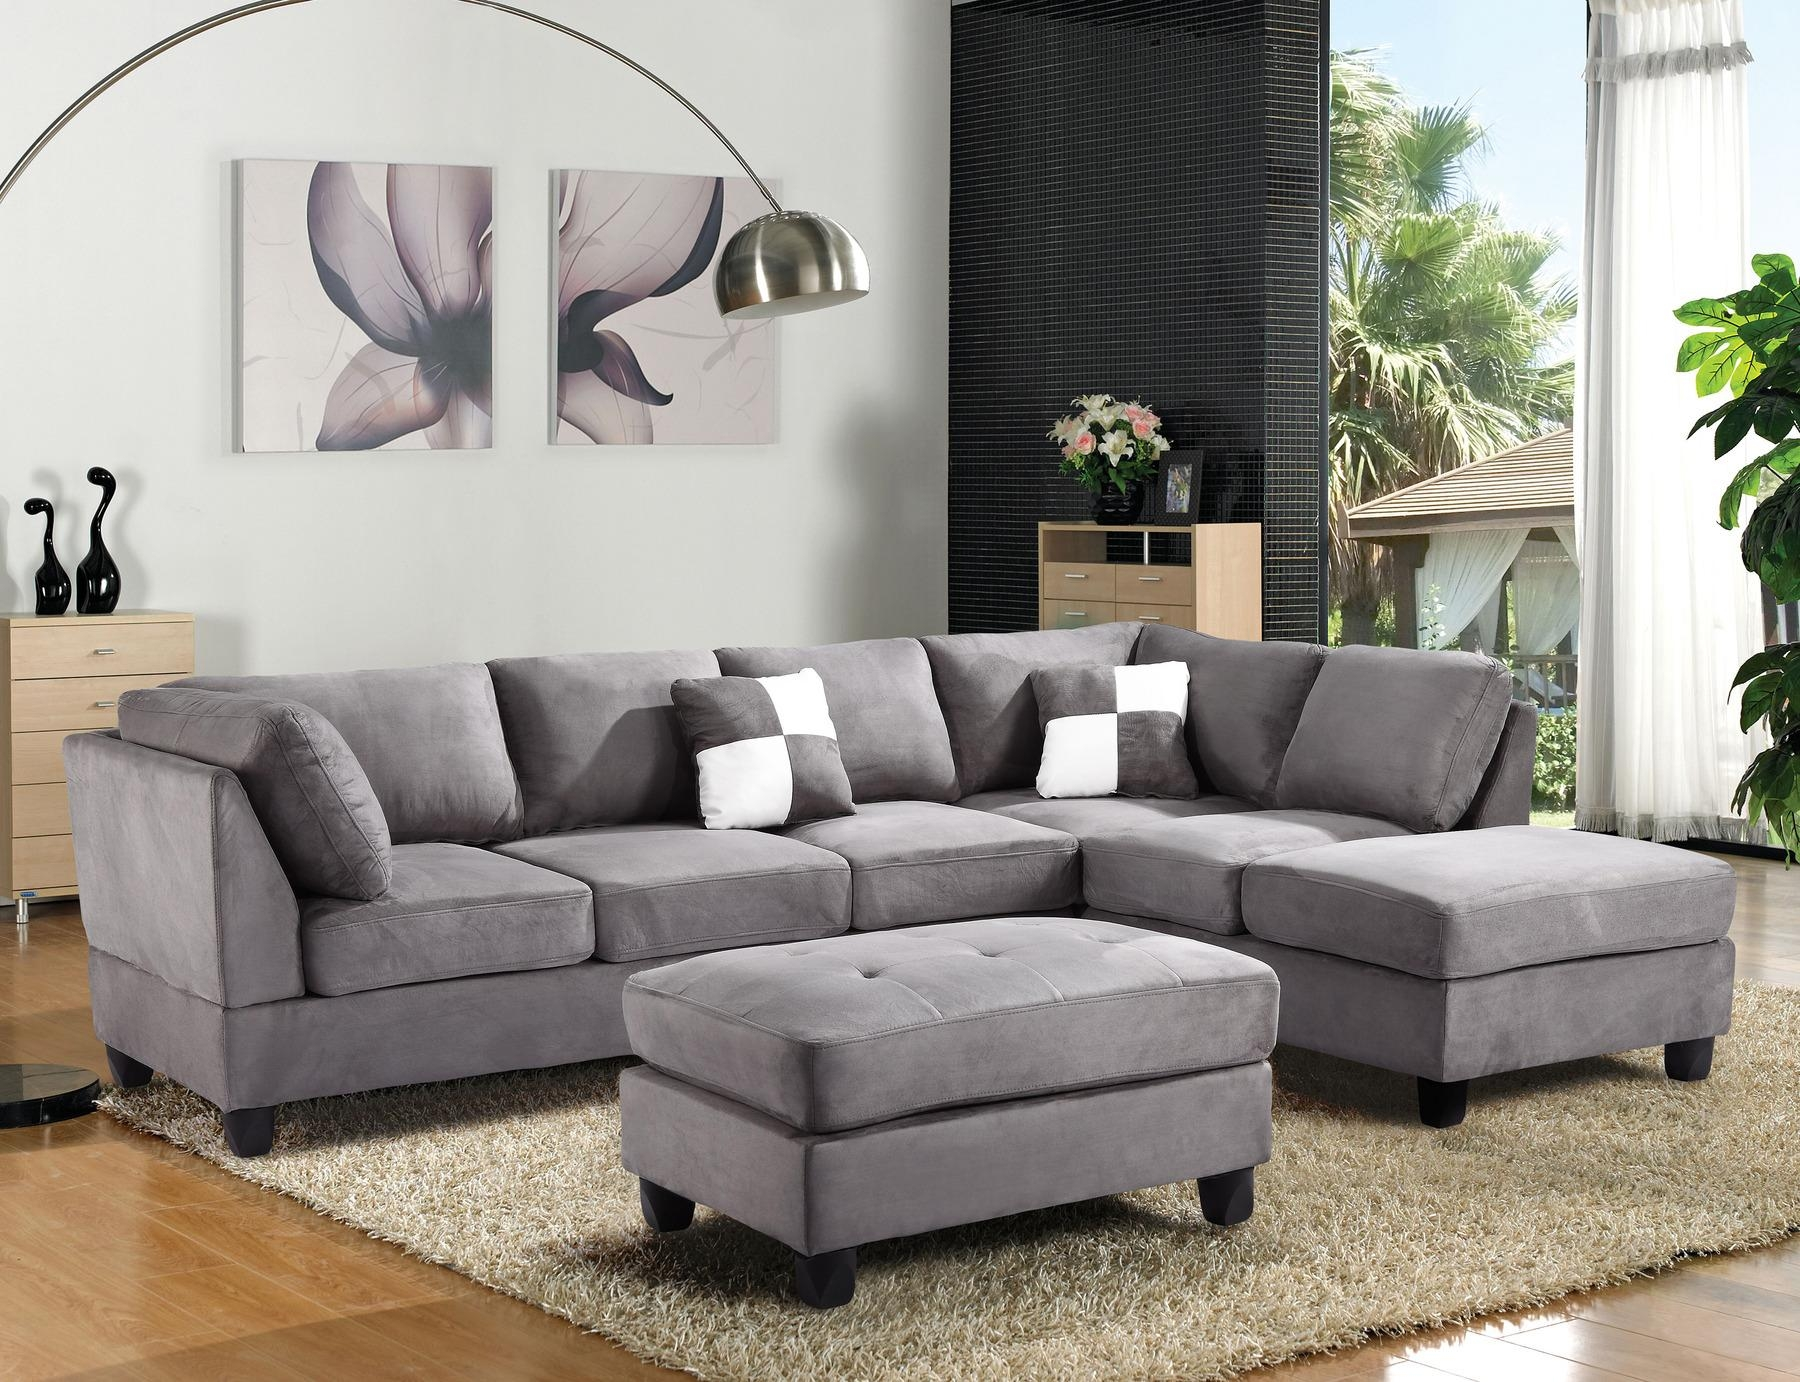 Sectional Sofas, Microfiber Sectional Sofas At Comfyco, Modern With Small Microfiber Sectional (Image 13 of 20)